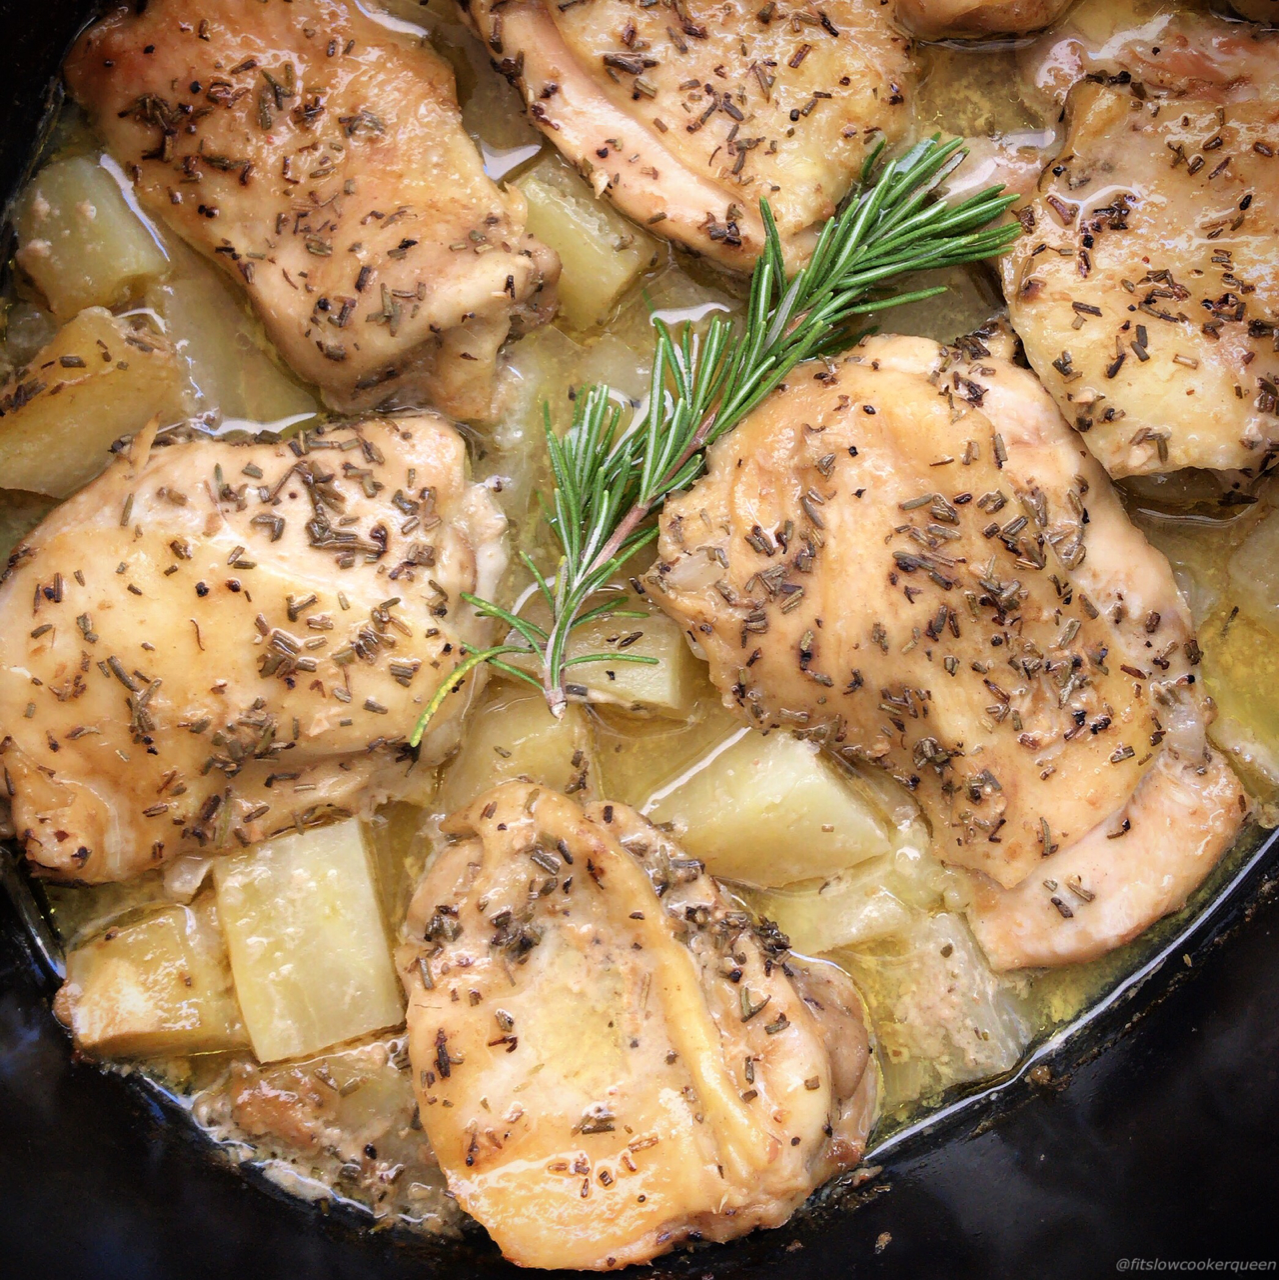 A homemade rosemary dijon sauce cooks on top of chicken and your preferred potato in this easy and healthy slow cooker recipe.